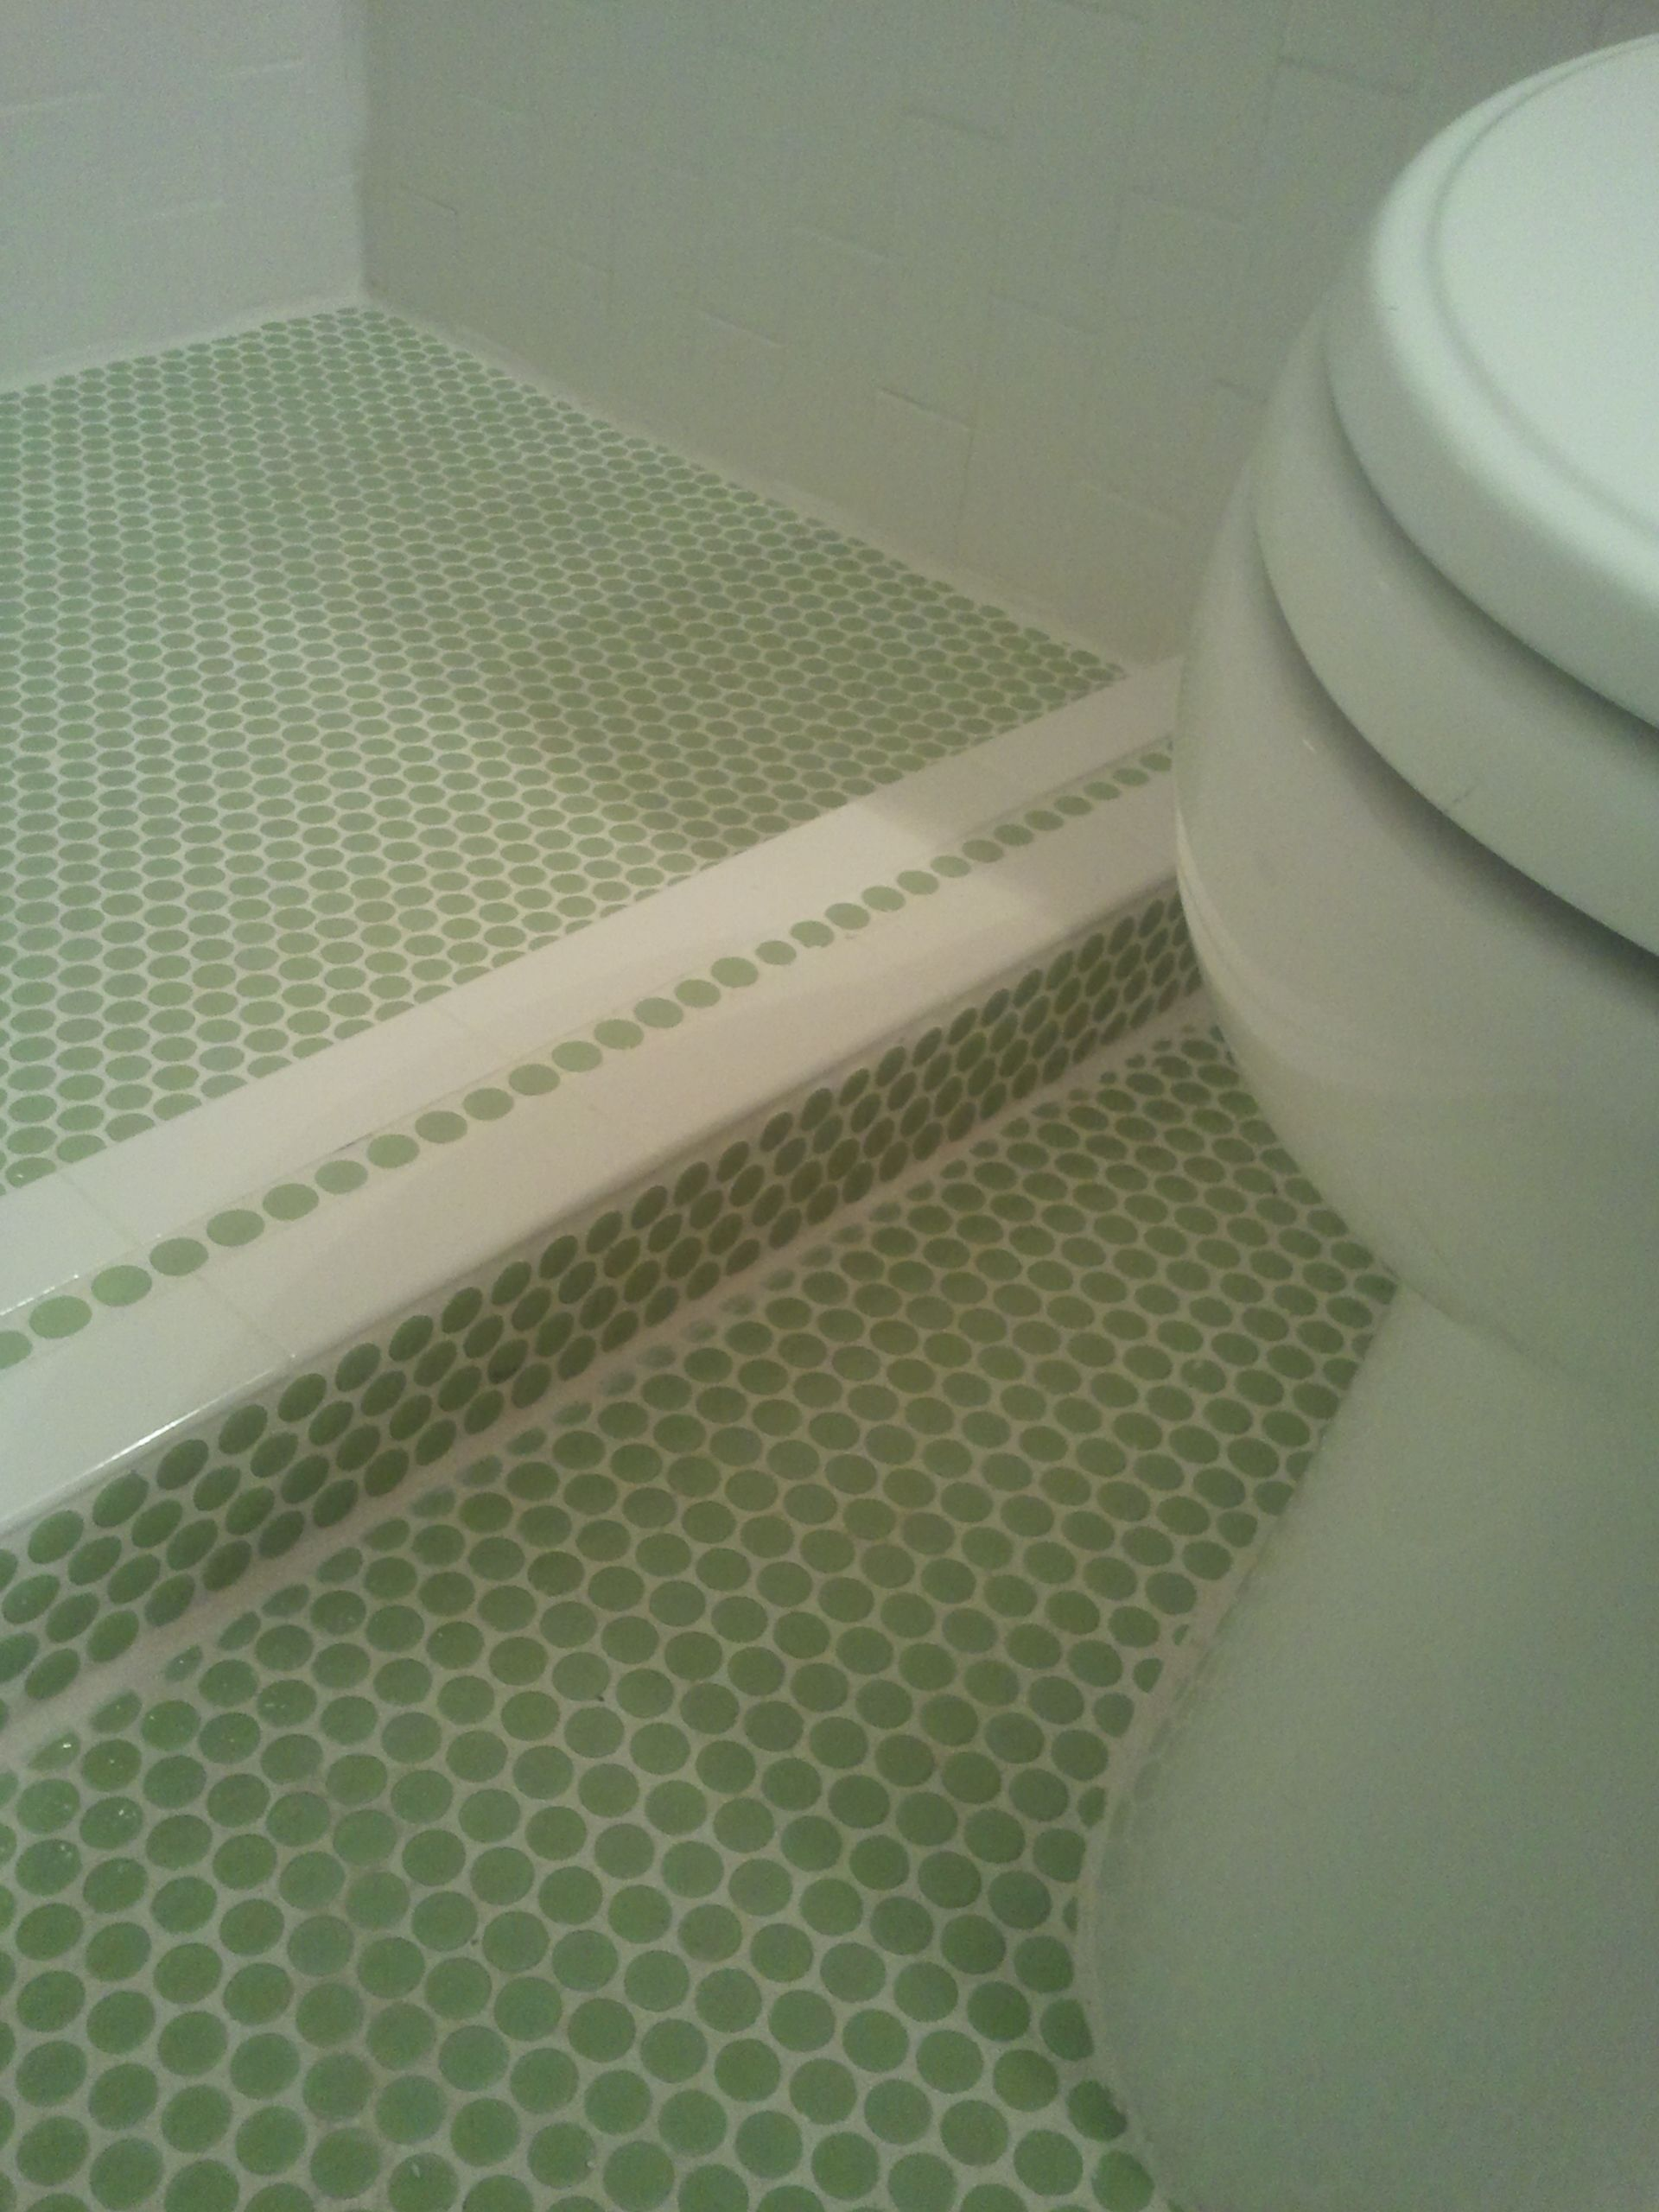 Today S Color Inspiration Mellow Minty Green Penny Tiles